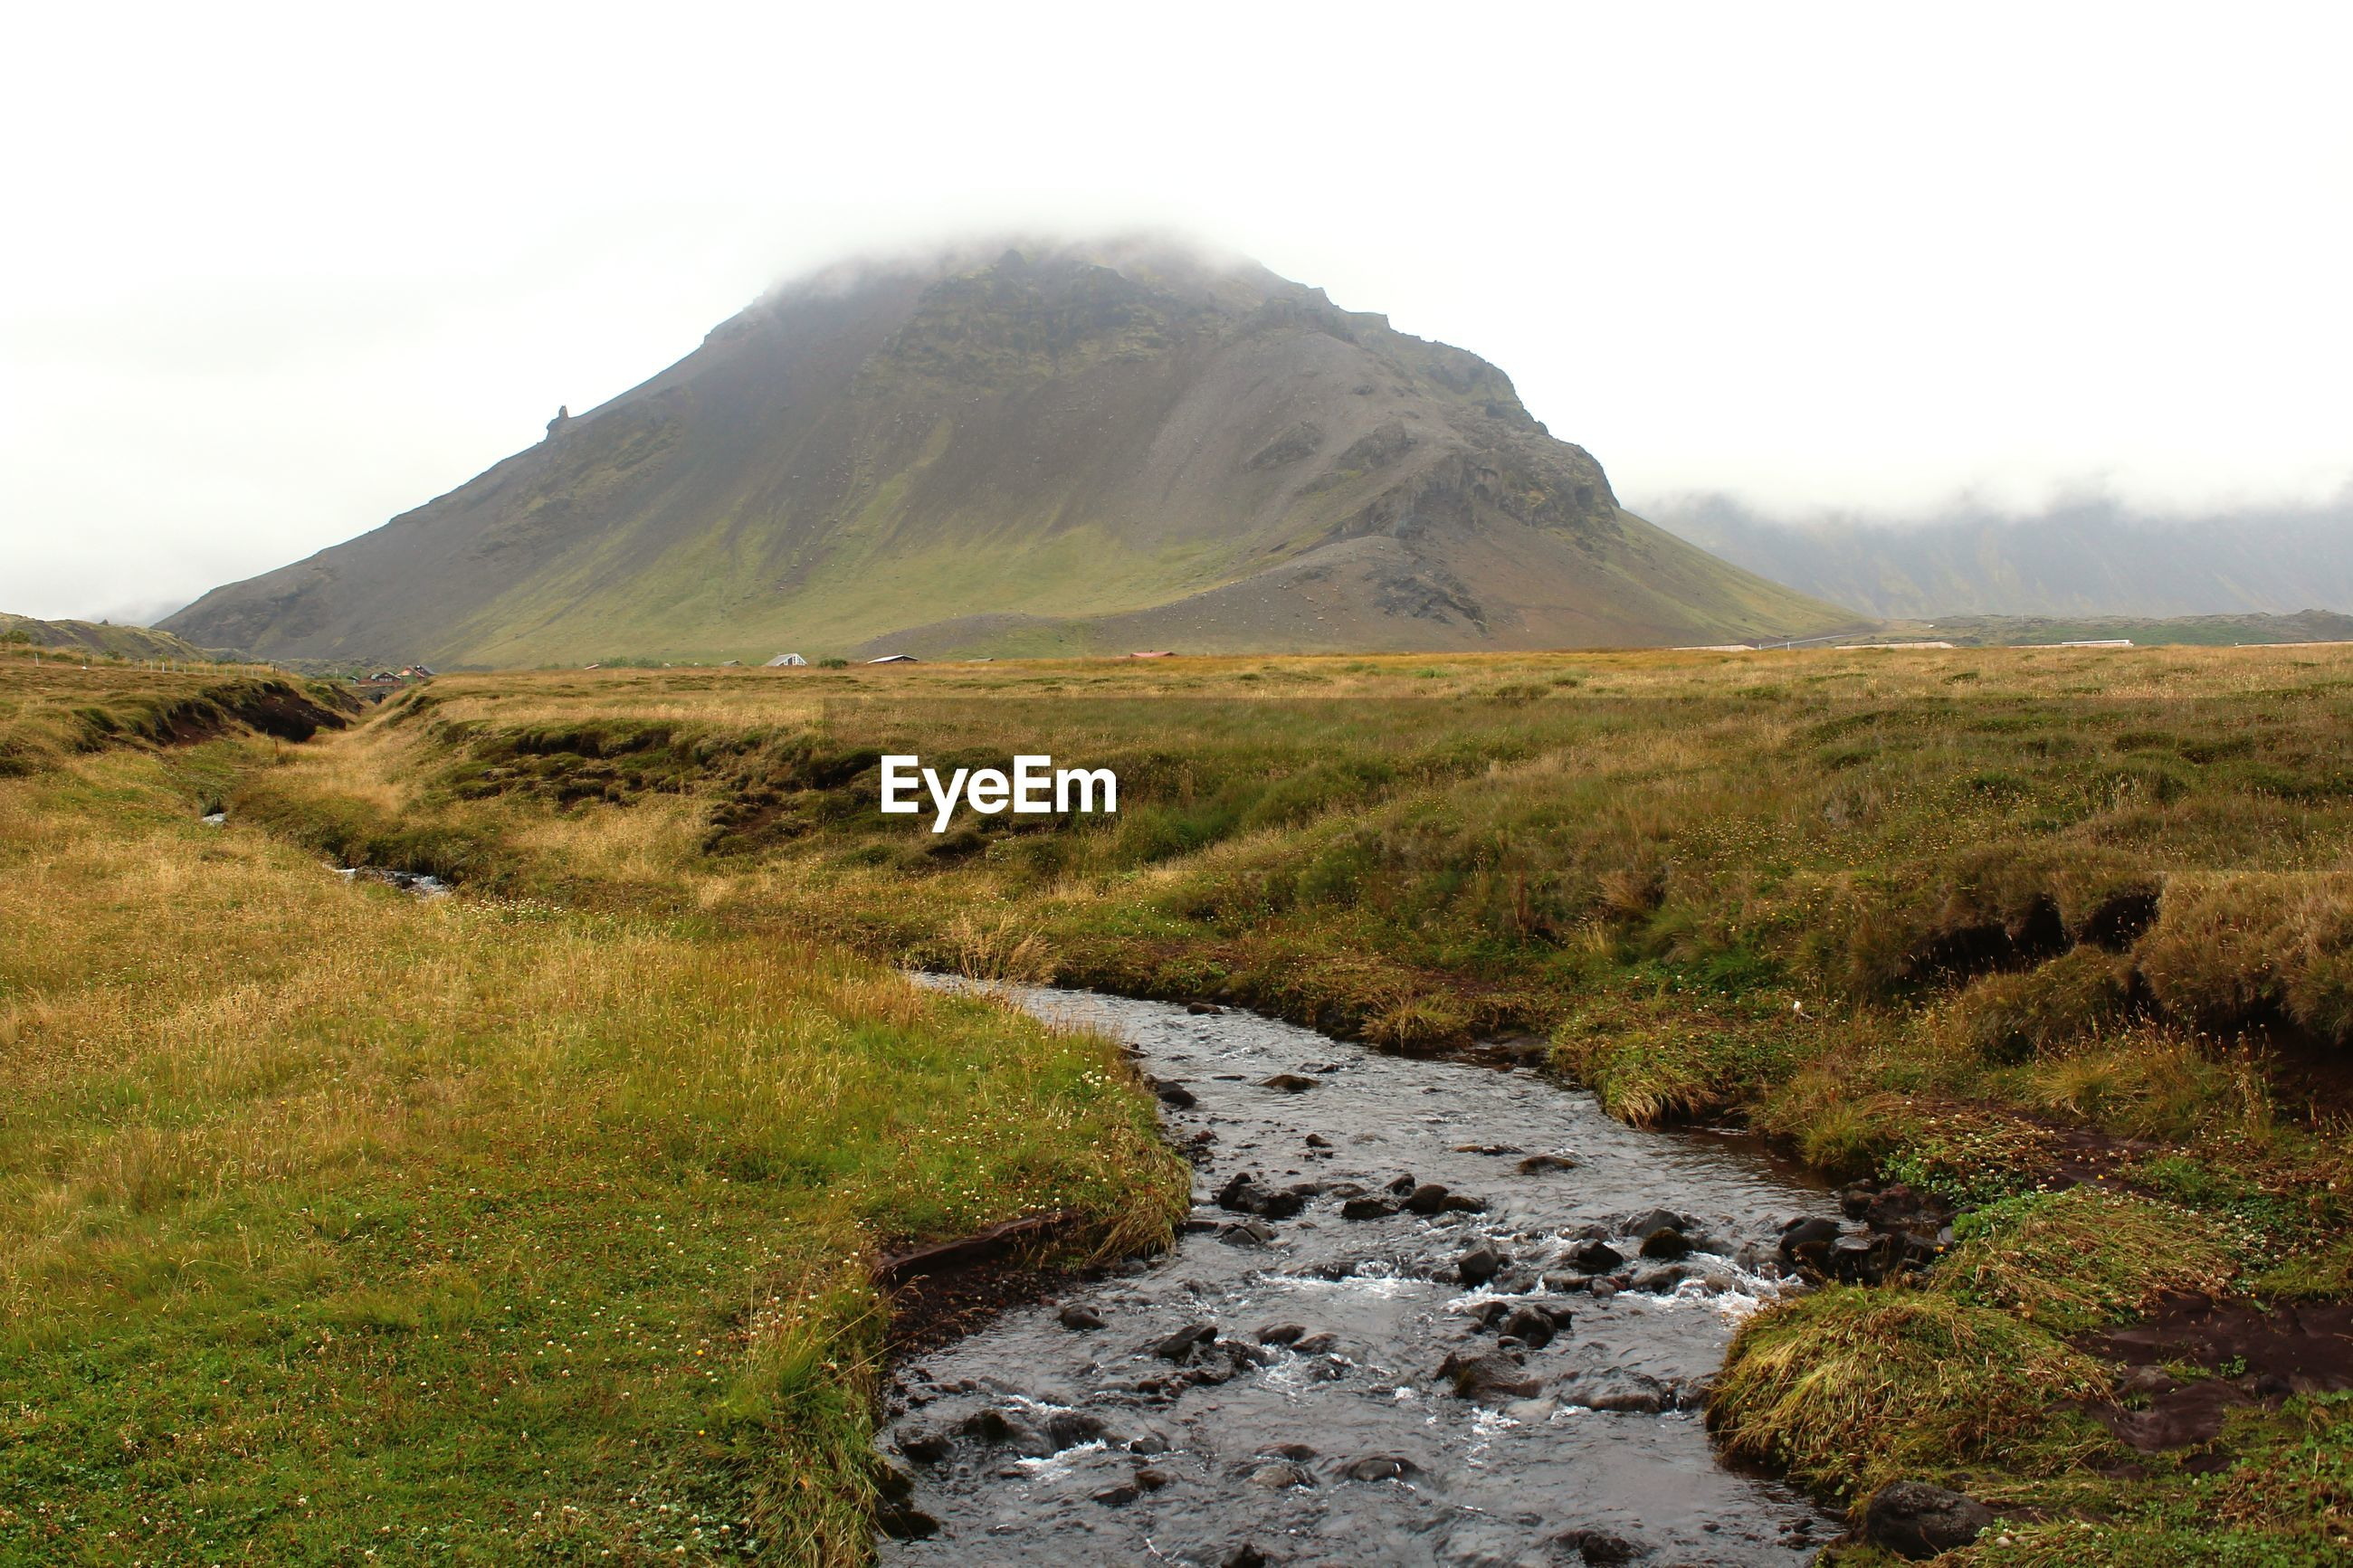 SCENIC VIEW OF STREAM FLOWING BY LAND AGAINST SKY